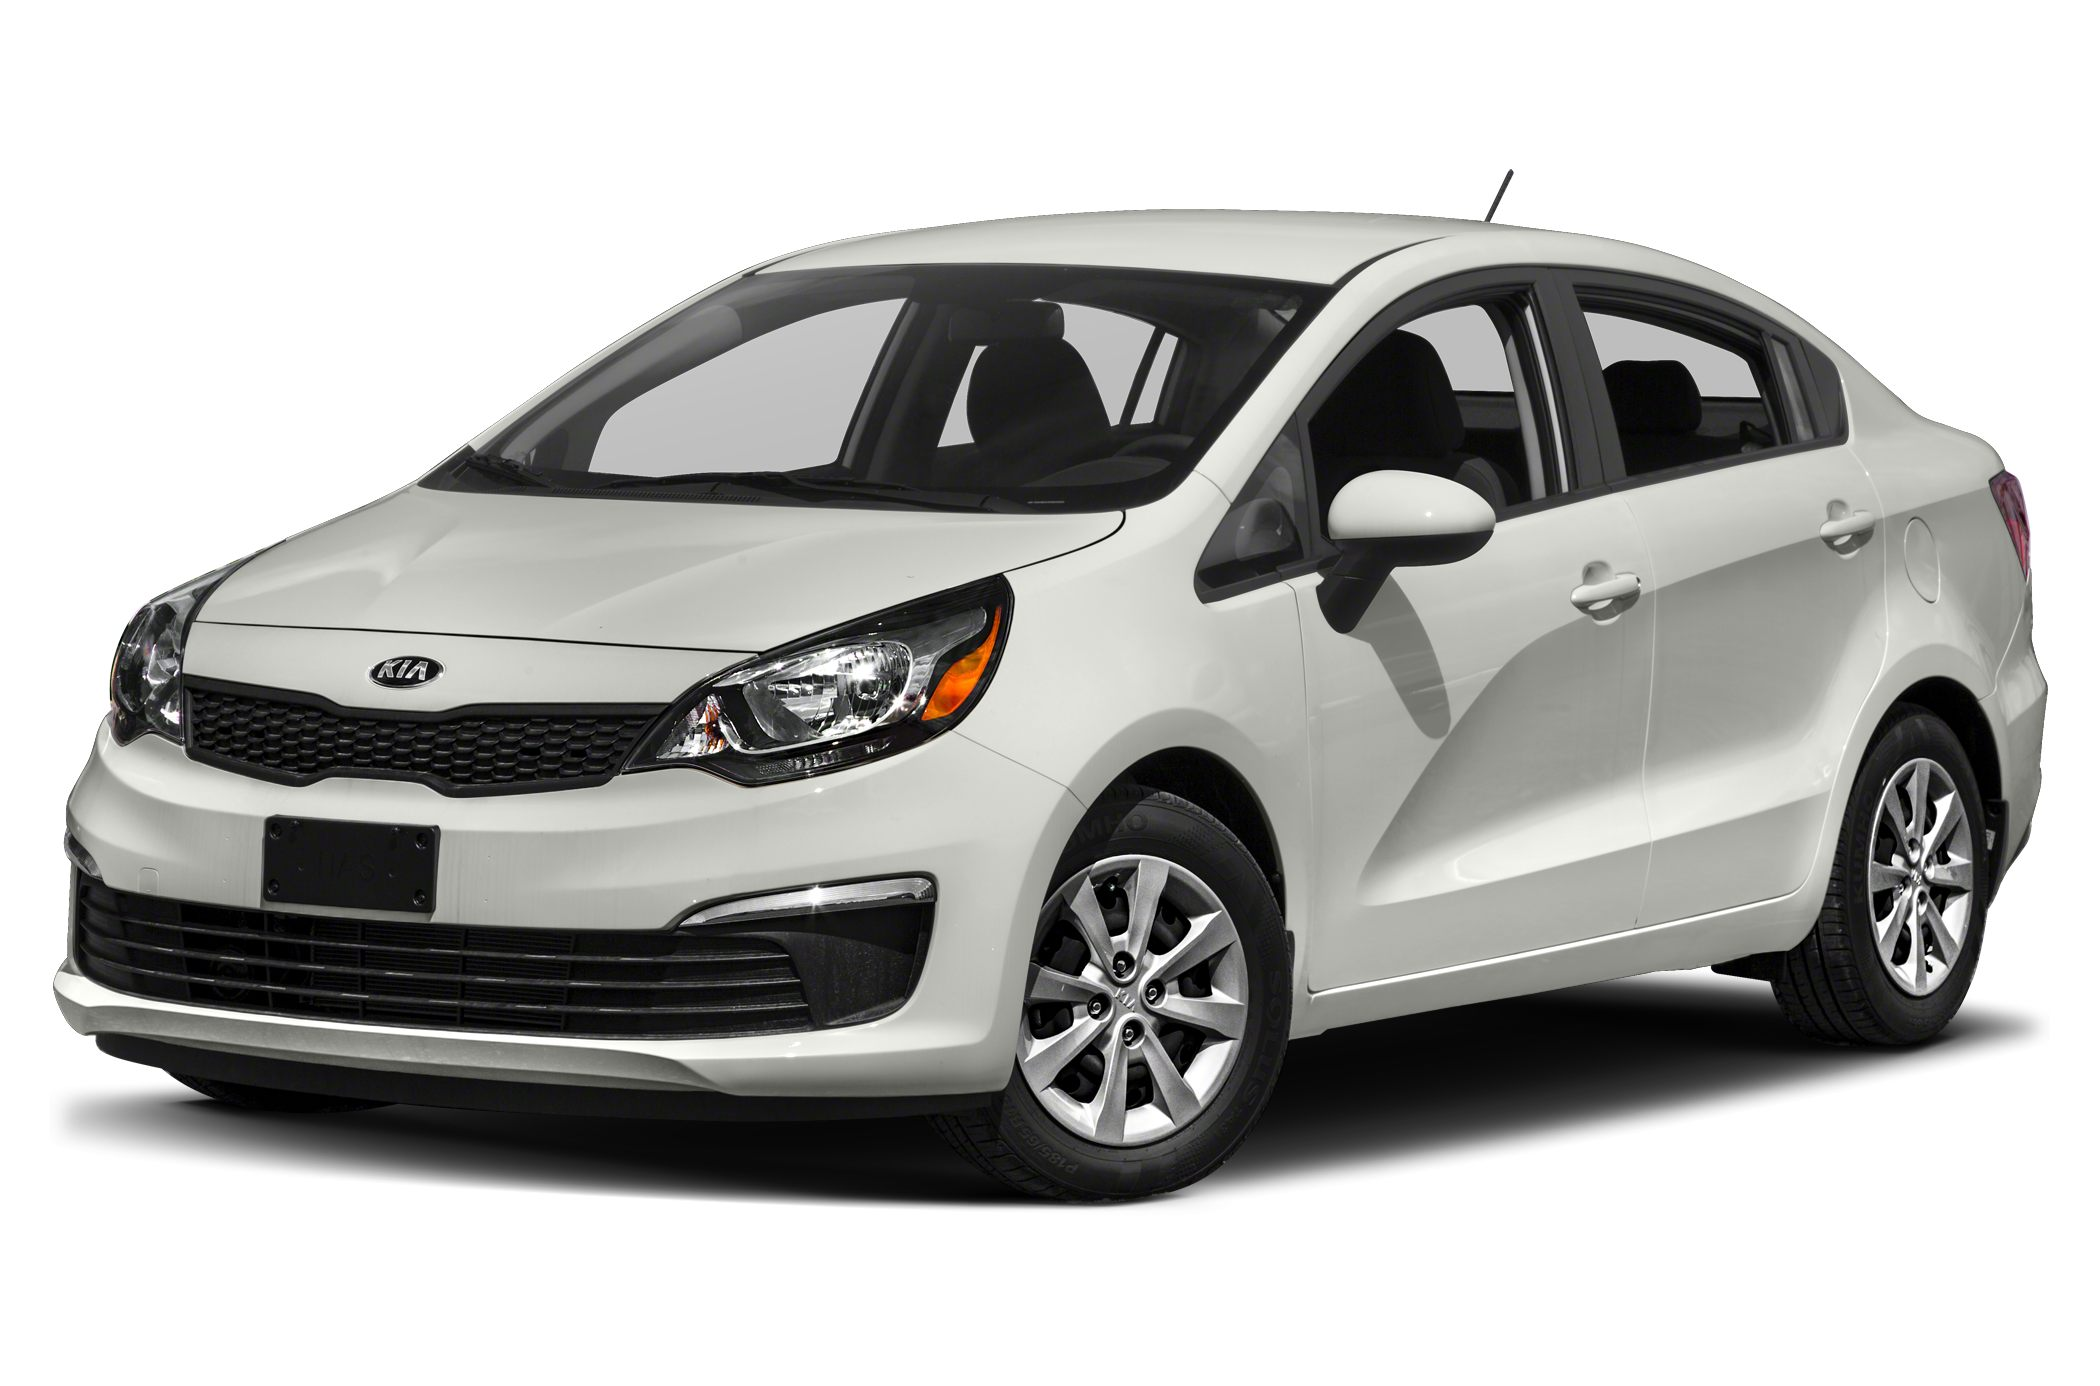 kia rio pricing reviews and new model information autoblog. Black Bedroom Furniture Sets. Home Design Ideas